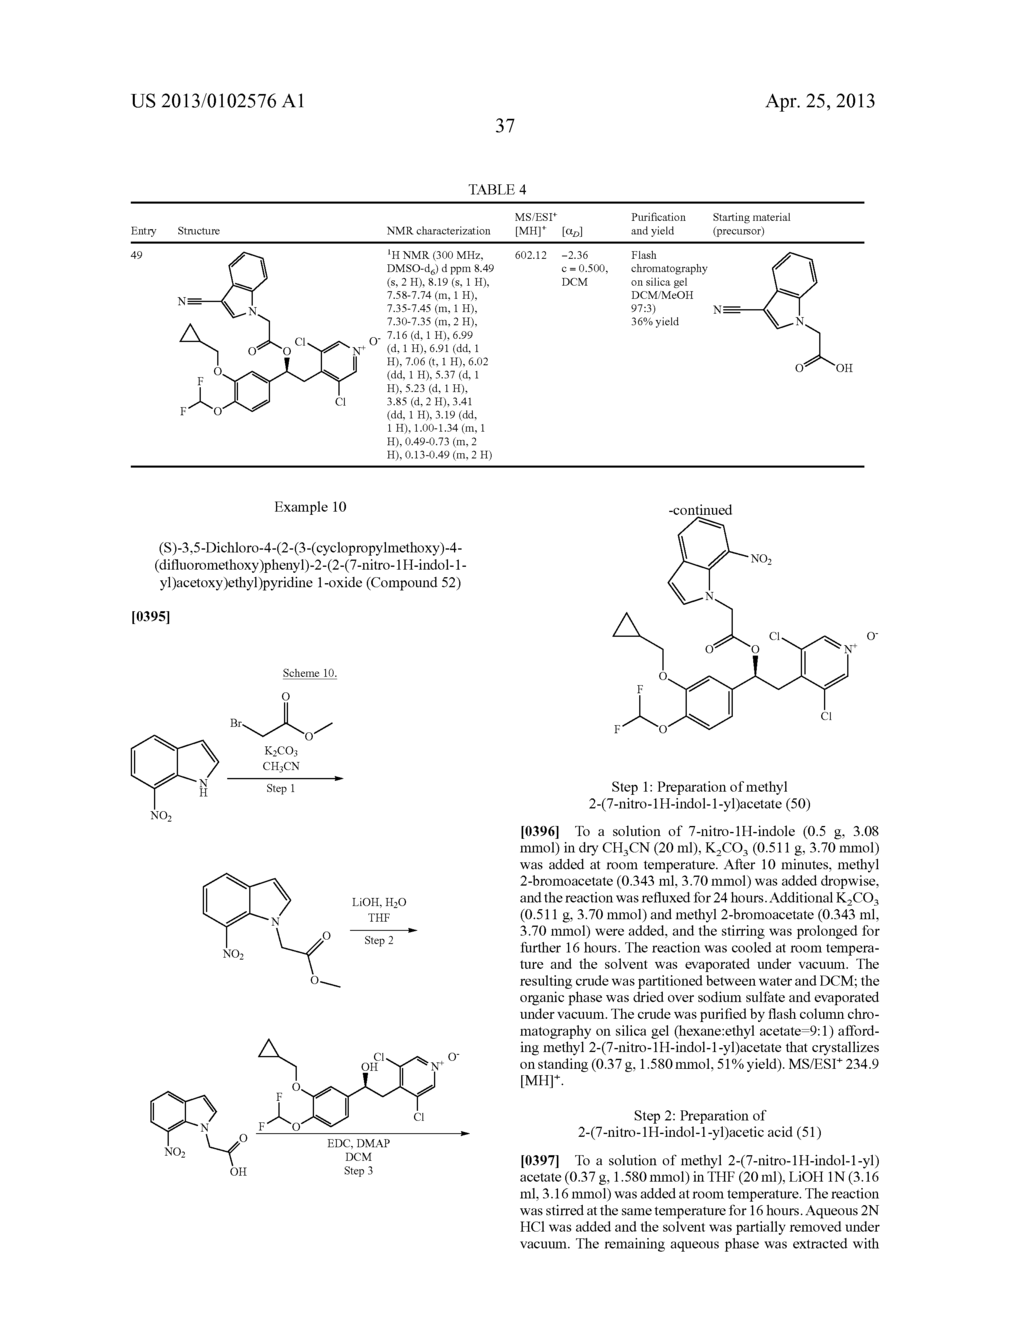 DERIVATIVES OF 1-PHENYL-2-PYRIDINYL ALKYL ALCOHOLS AS PHOSPHODIESTERASE     INHIBITORS - diagram, schematic, and image 38